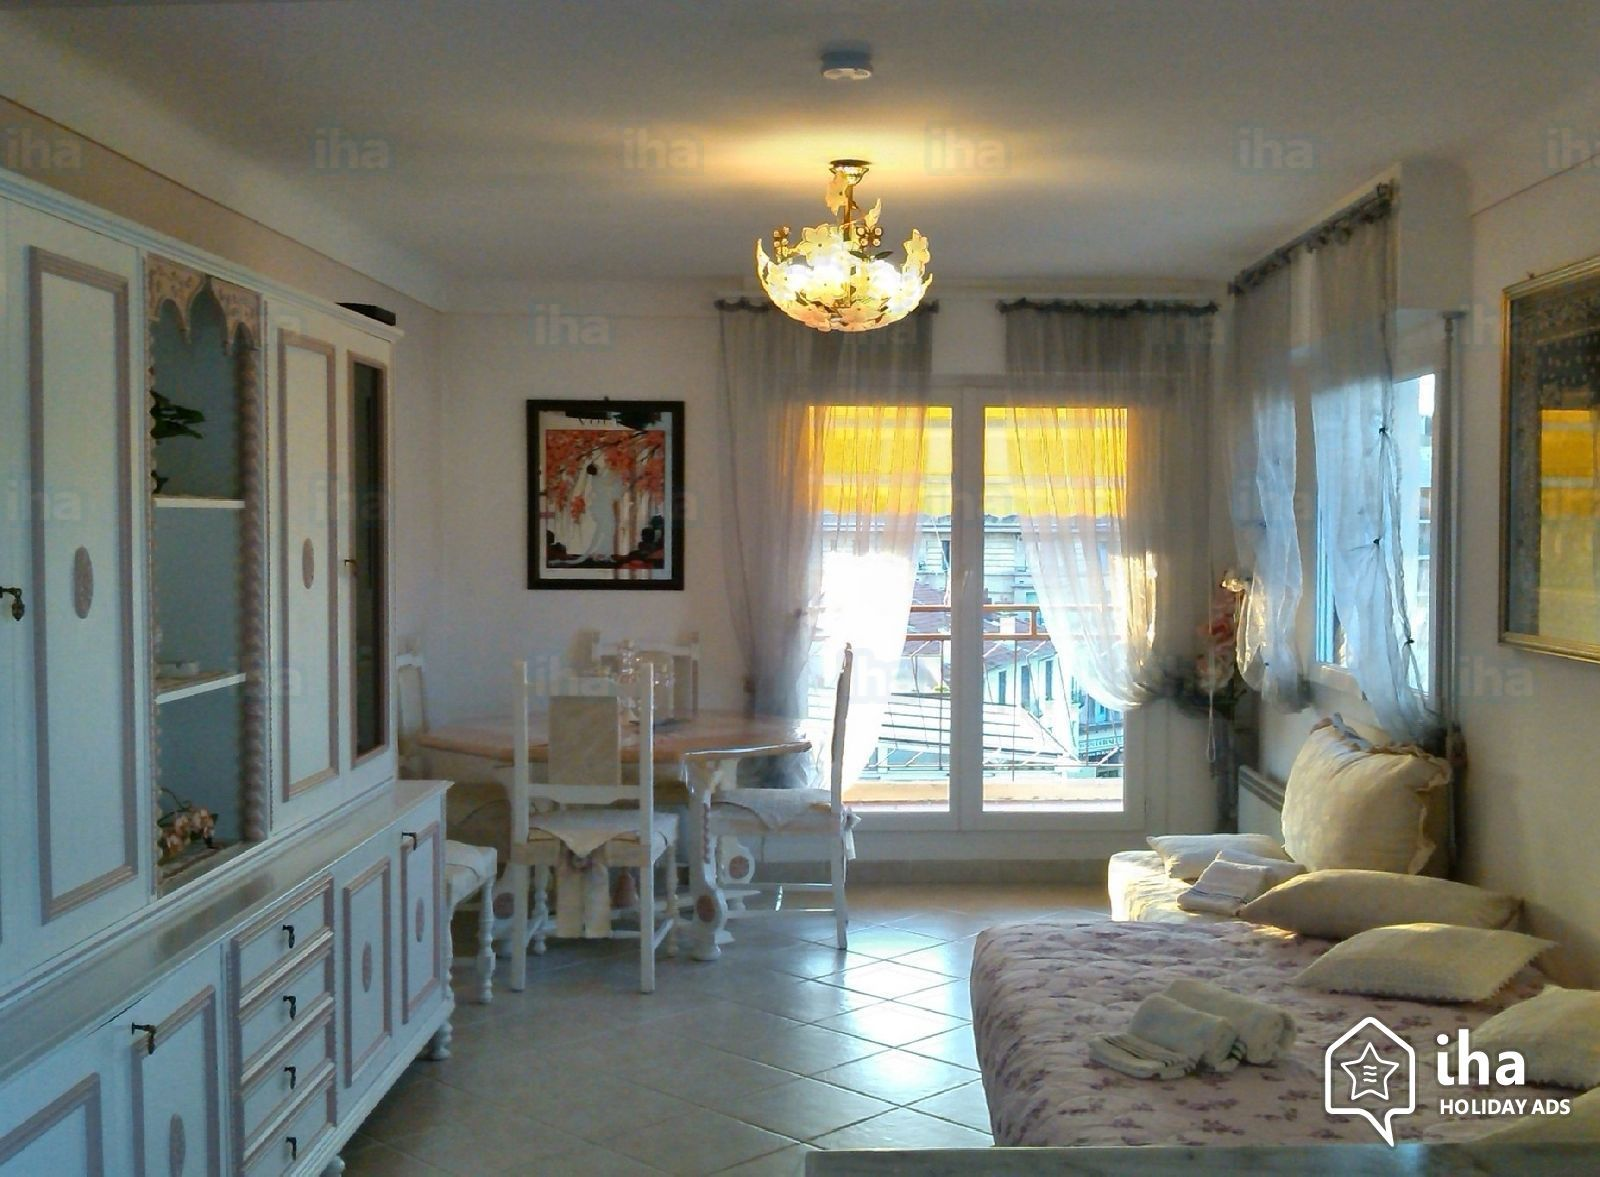 Apartmentflat for rent in an estate in cannes iha